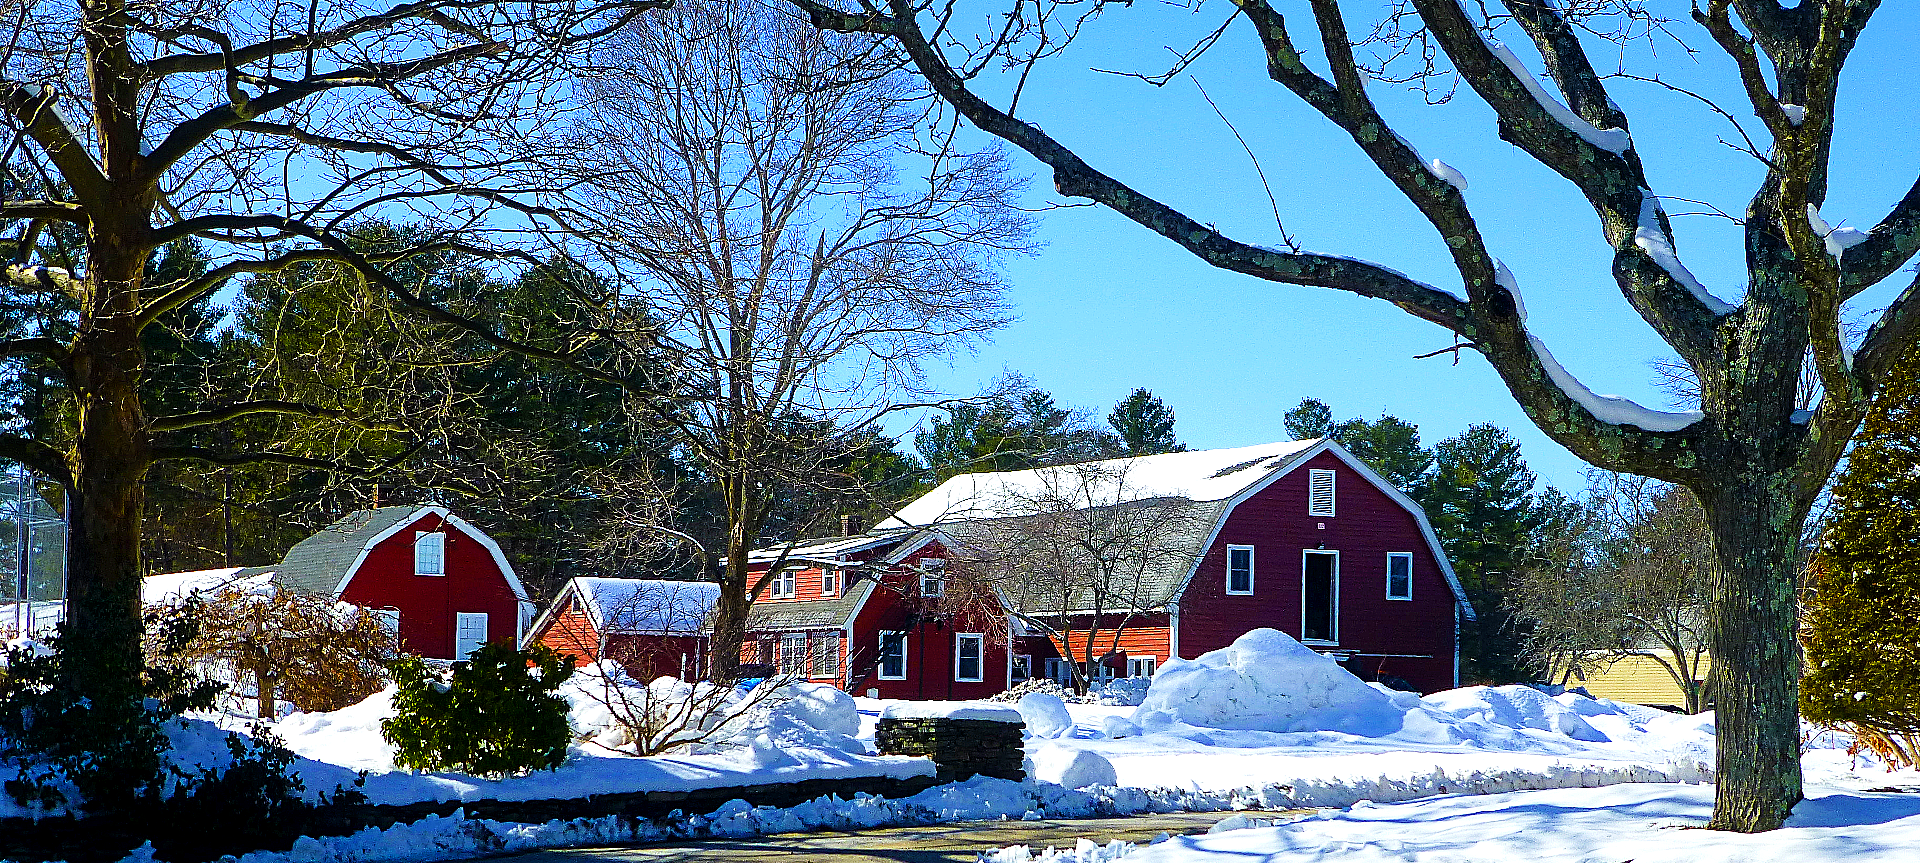 Red barn near the entrance of the Agricultural School in Walpole, Mass.